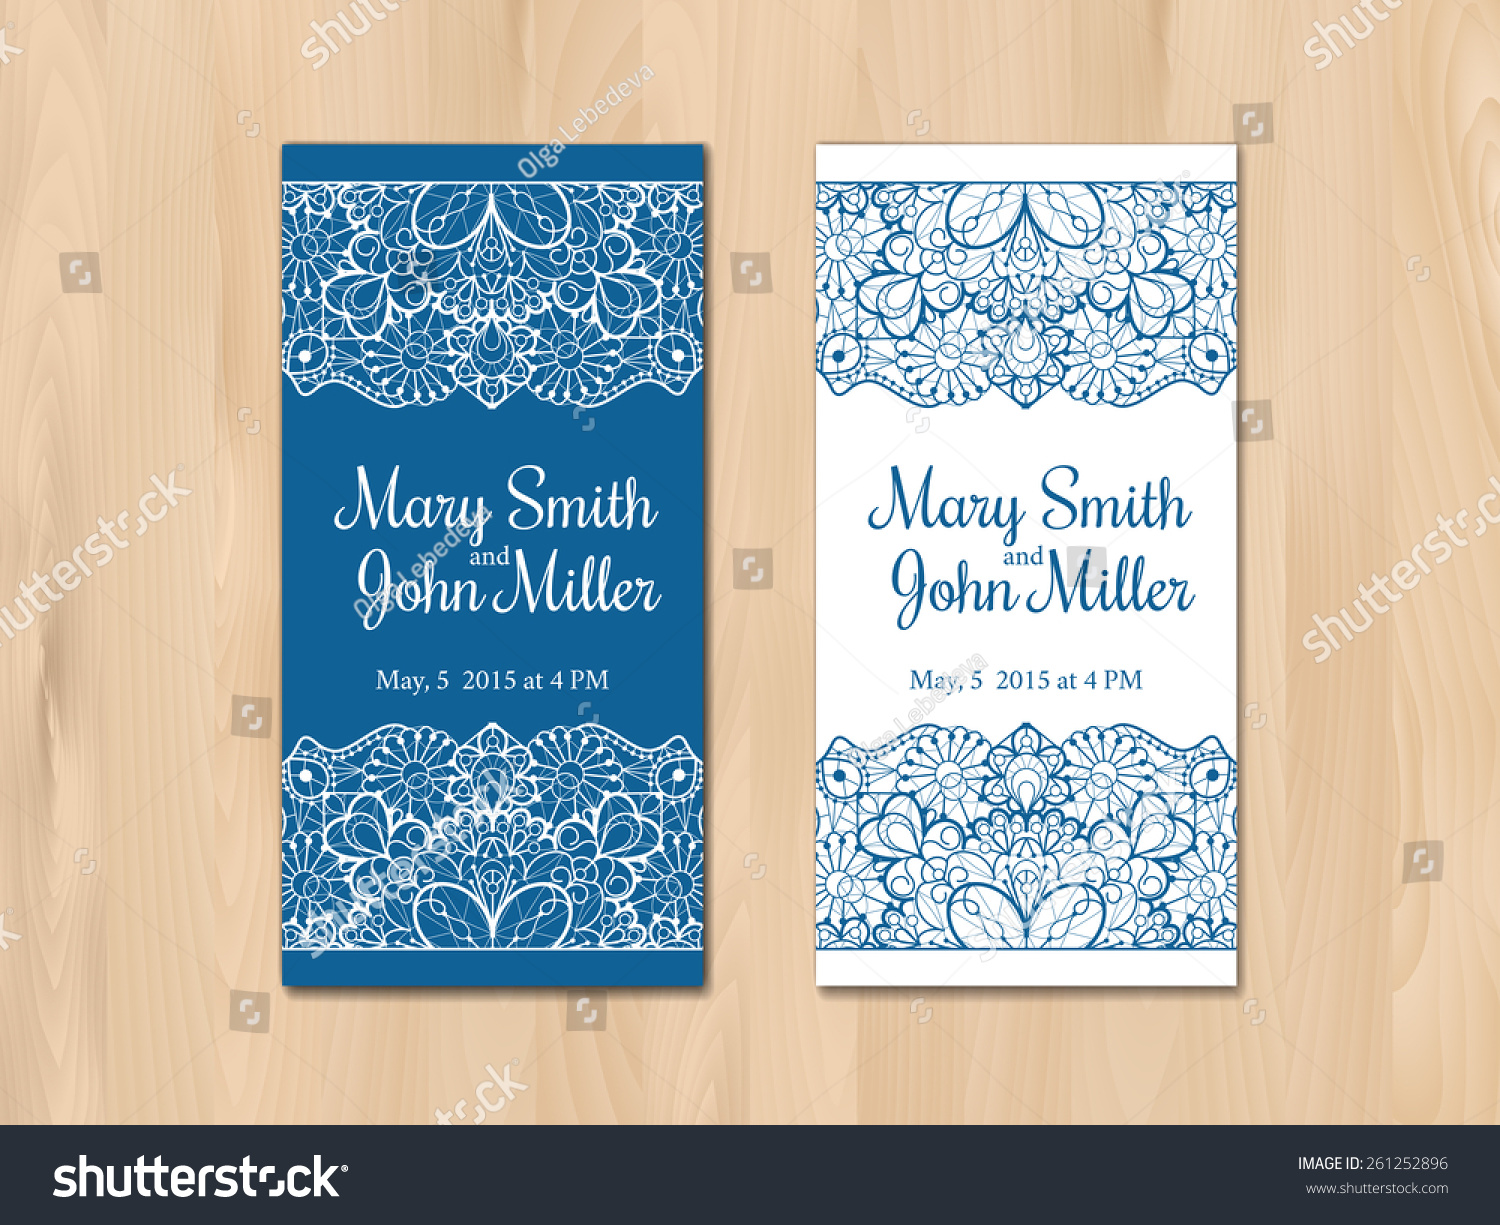 Wedding Invite Card Stock: Wedding Invitation Card Template Vintage Lace Stock Vector